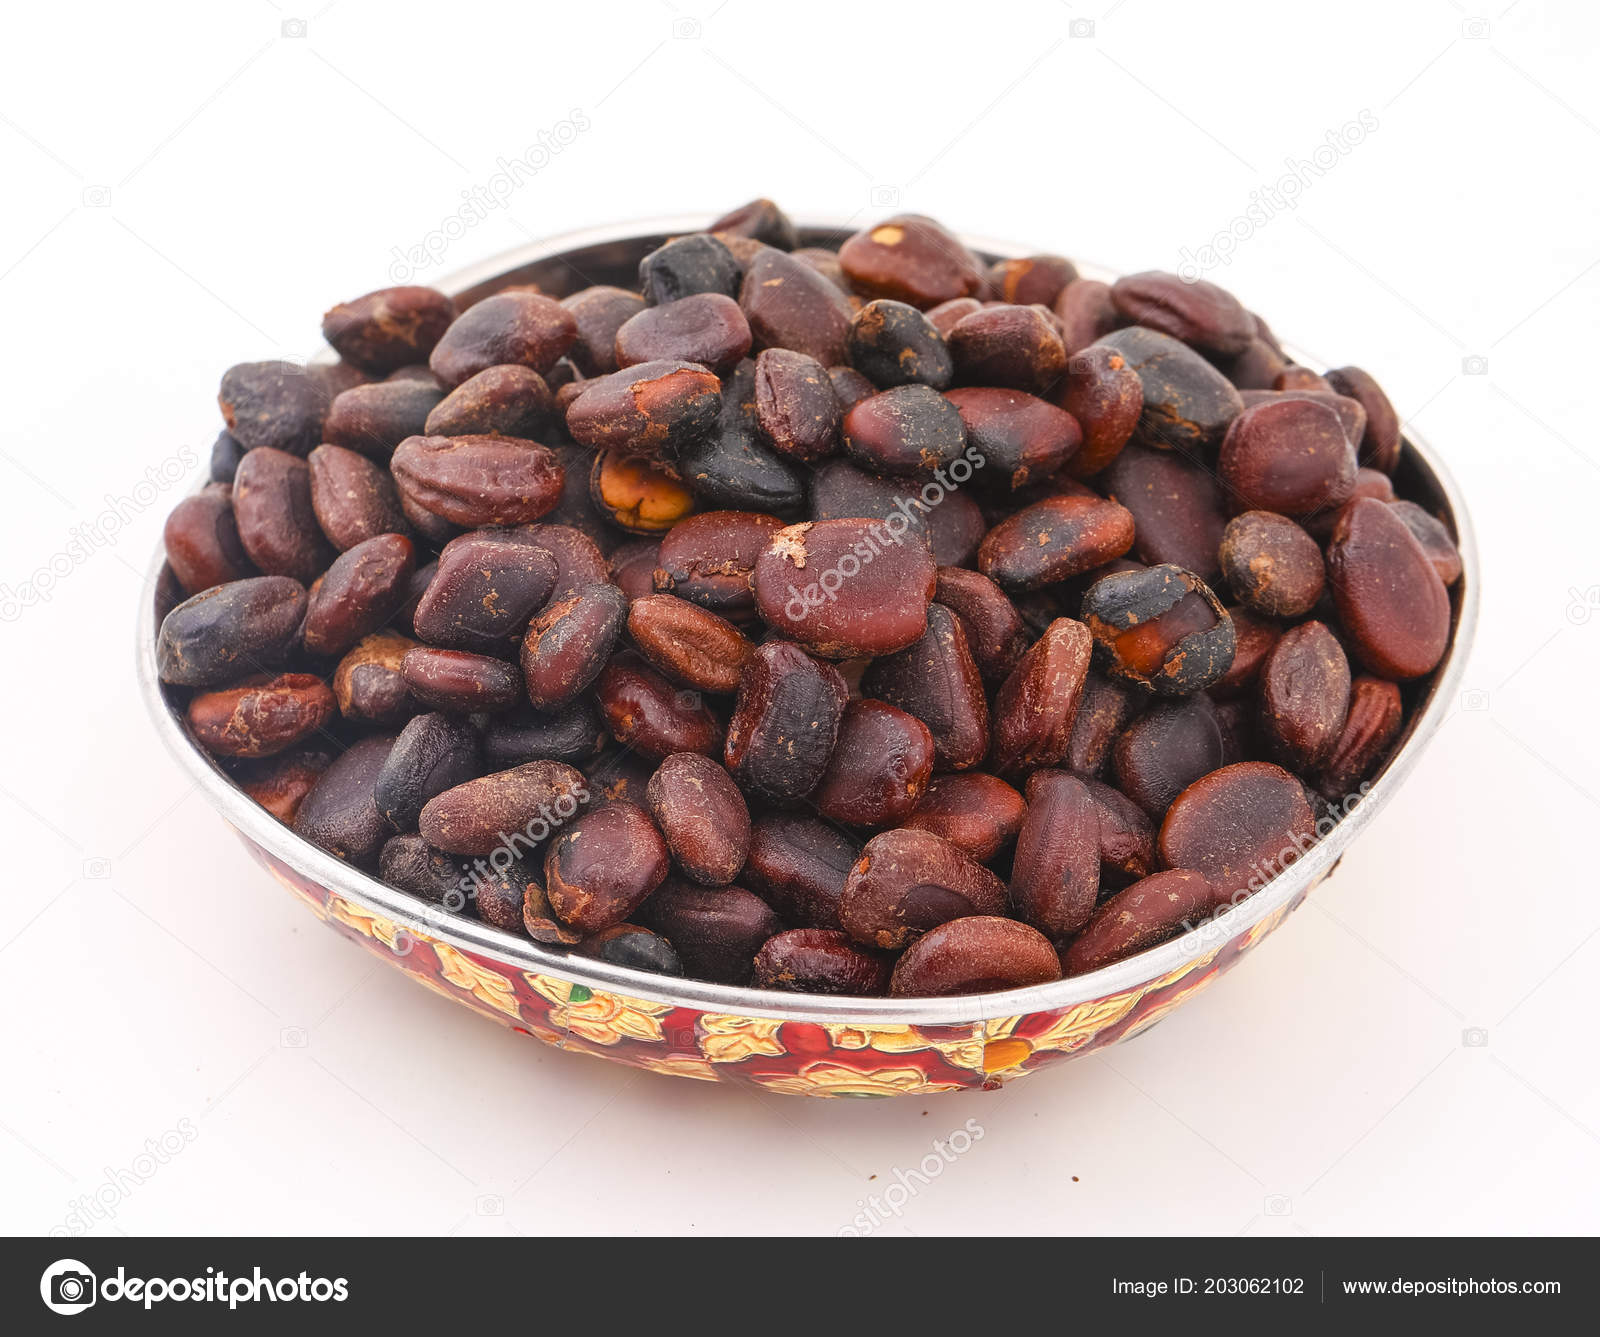 Pictures Of Tamarind Seed